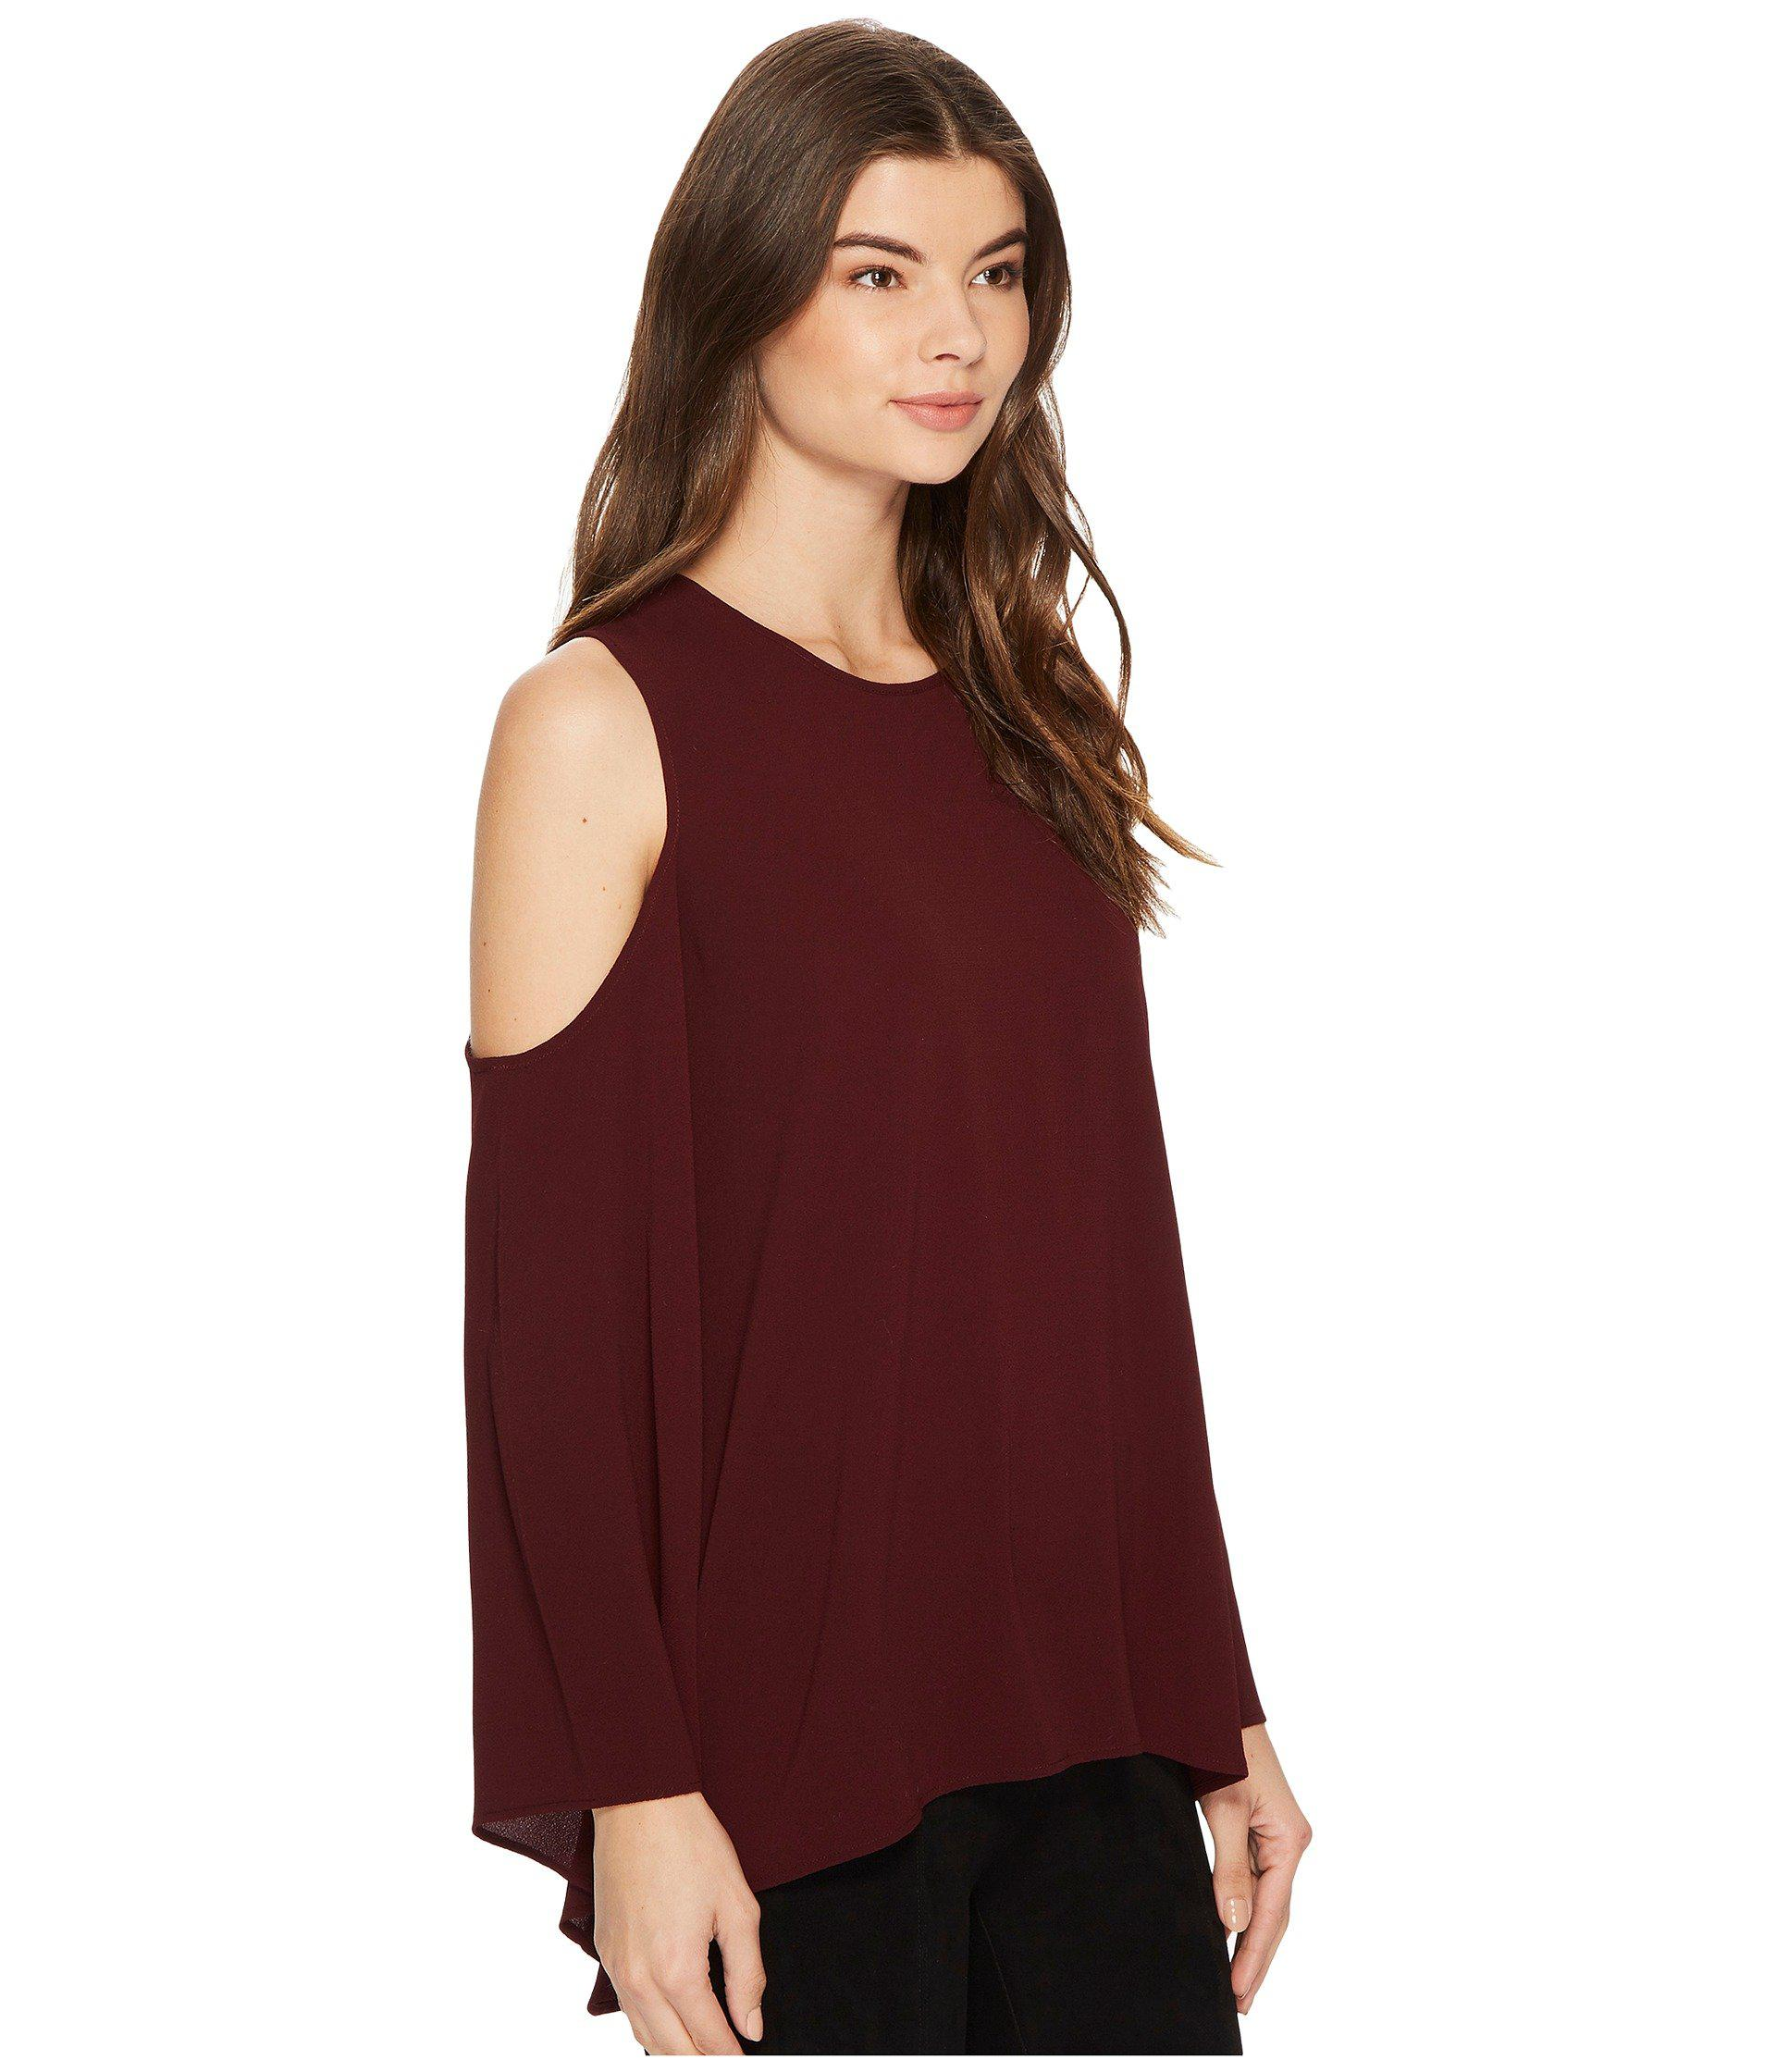 62e93d8ebeb240 Lyst - Vince Camuto Bell Sleeve Cold Shoulder Blouse in Red